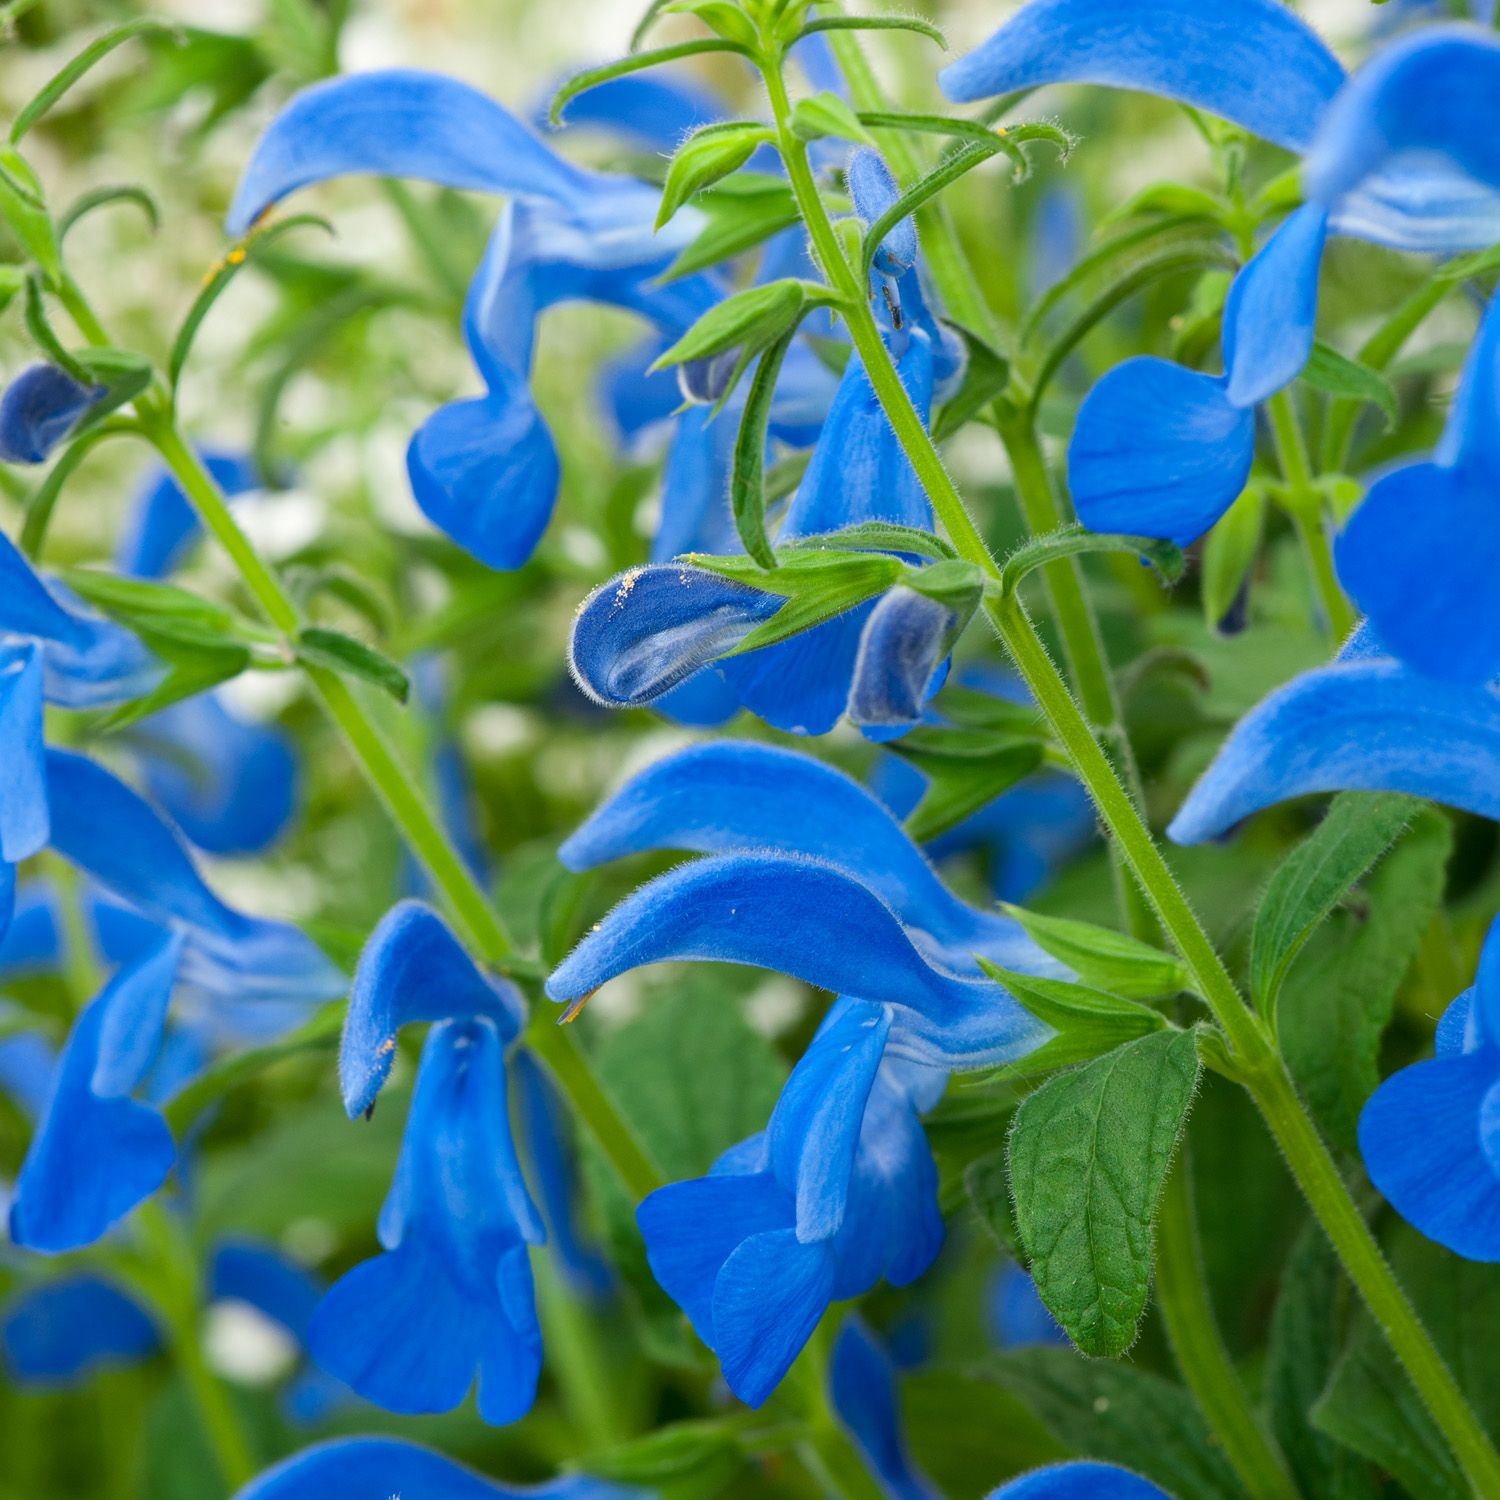 Salvia patio deep blue google search garden inspiration a vigorous well branched ornamental sage thats easy to grow blooms all summer and is heat tolerant the bushy clump forming plants are well branched izmirmasajfo Gallery